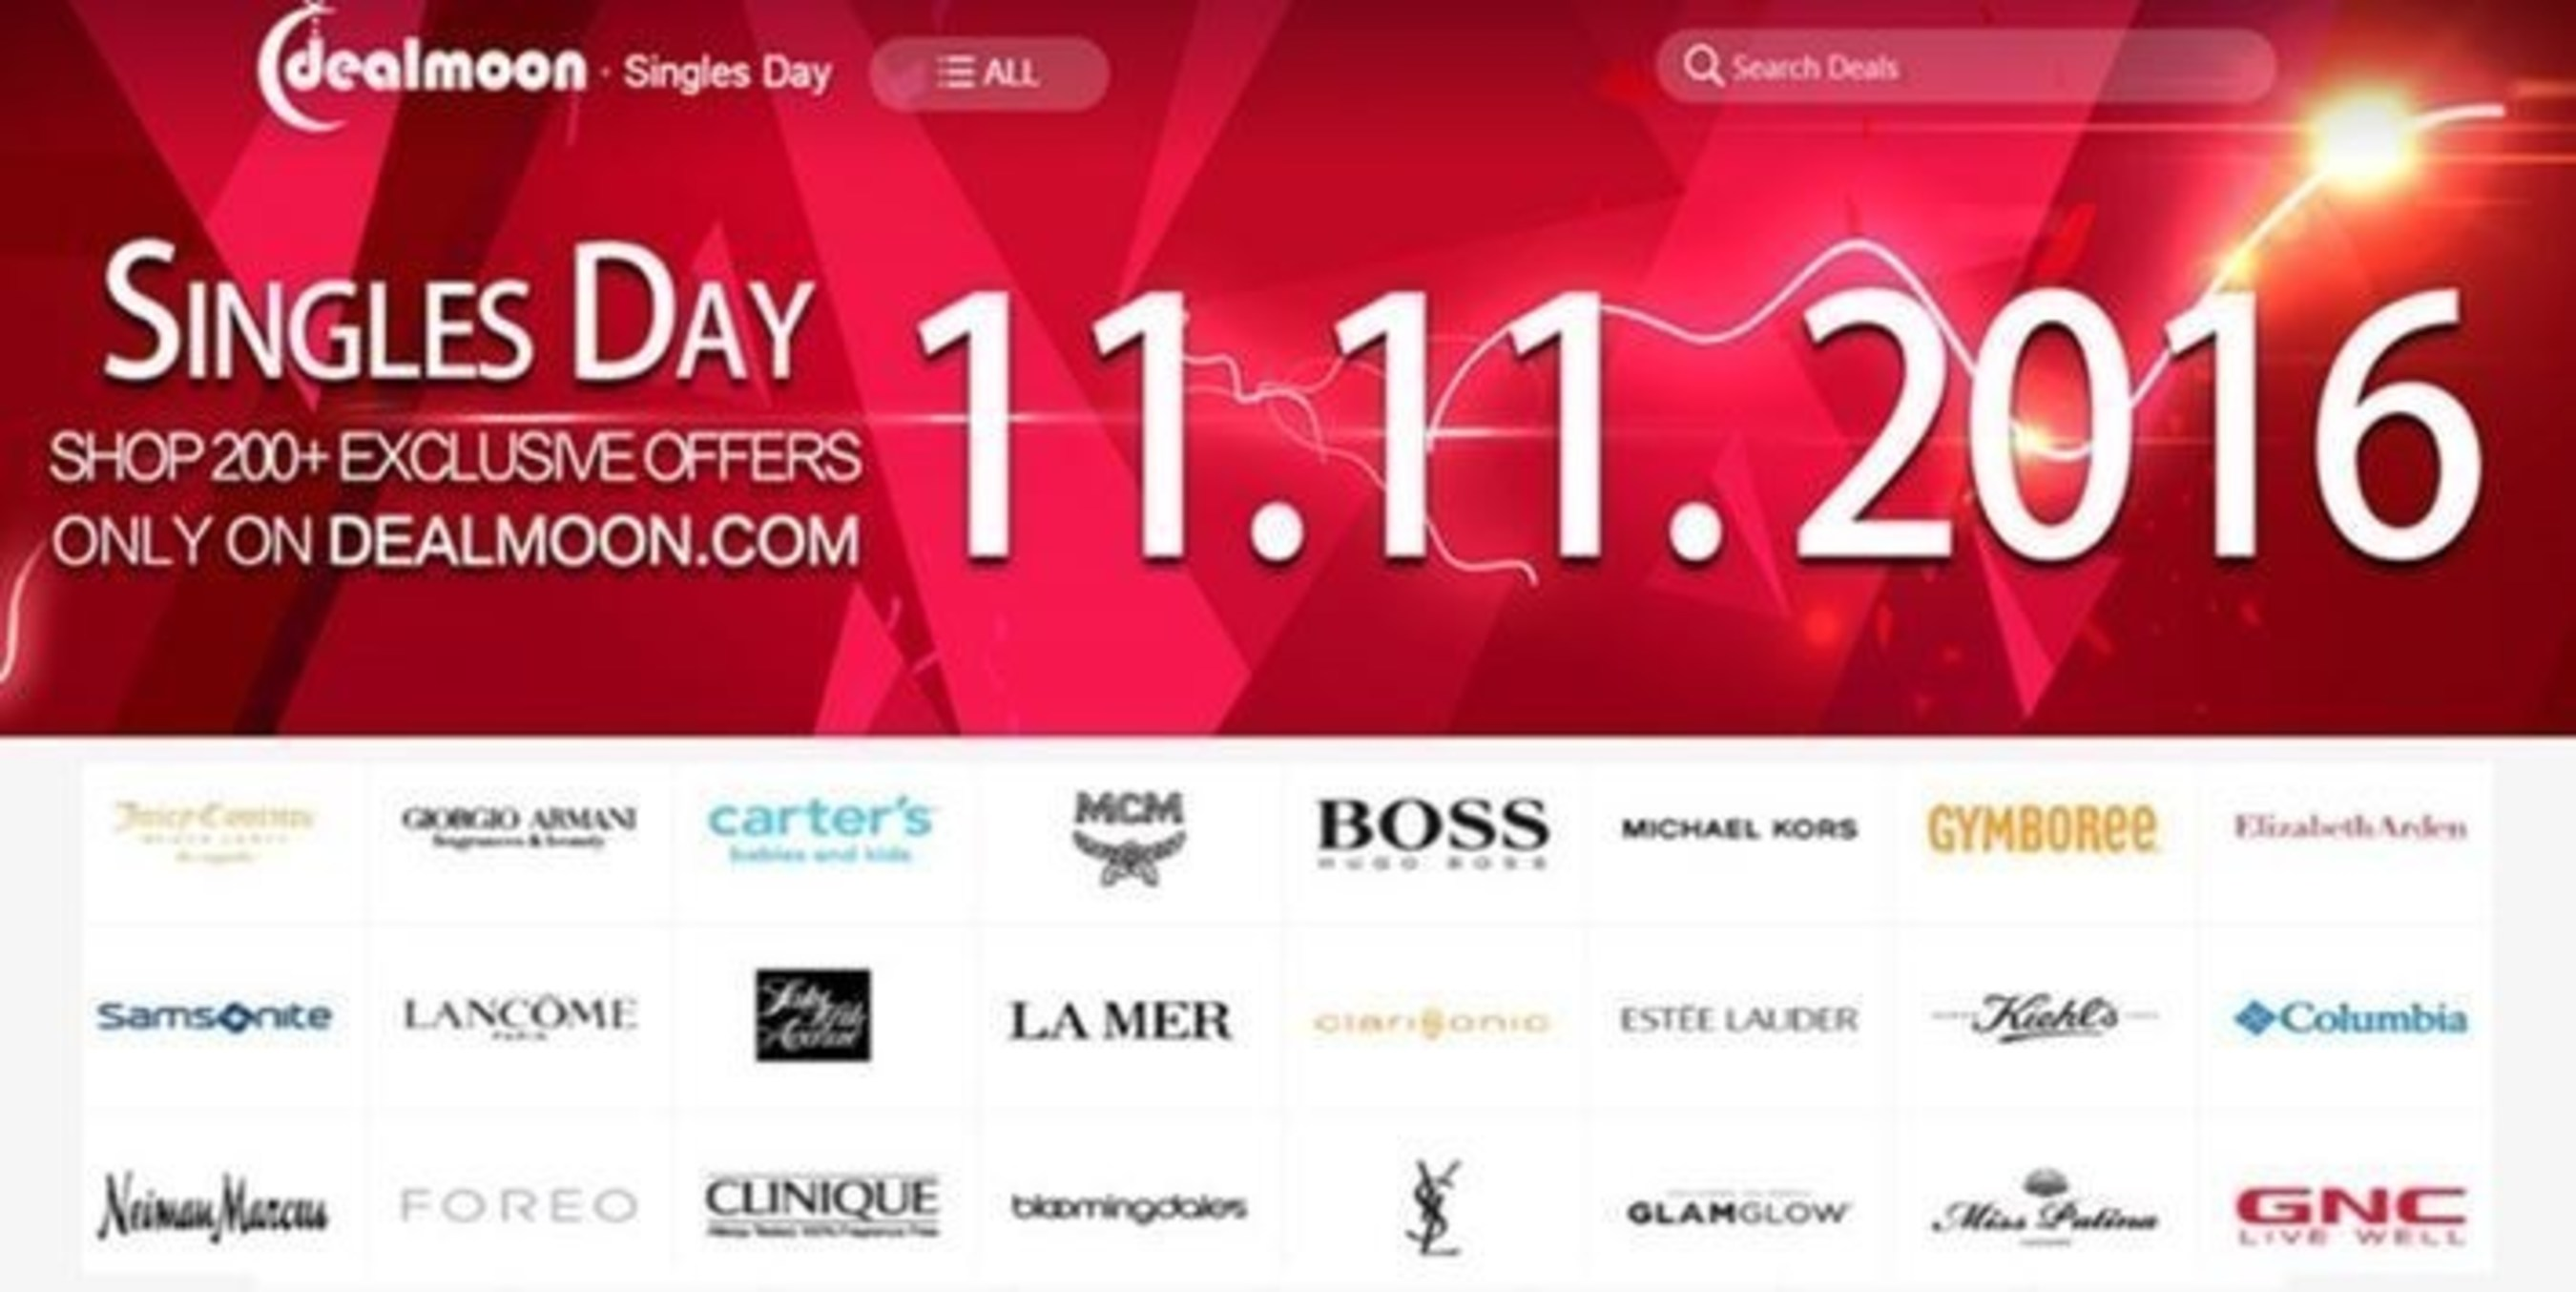 Singles Day on Dealmoon.com